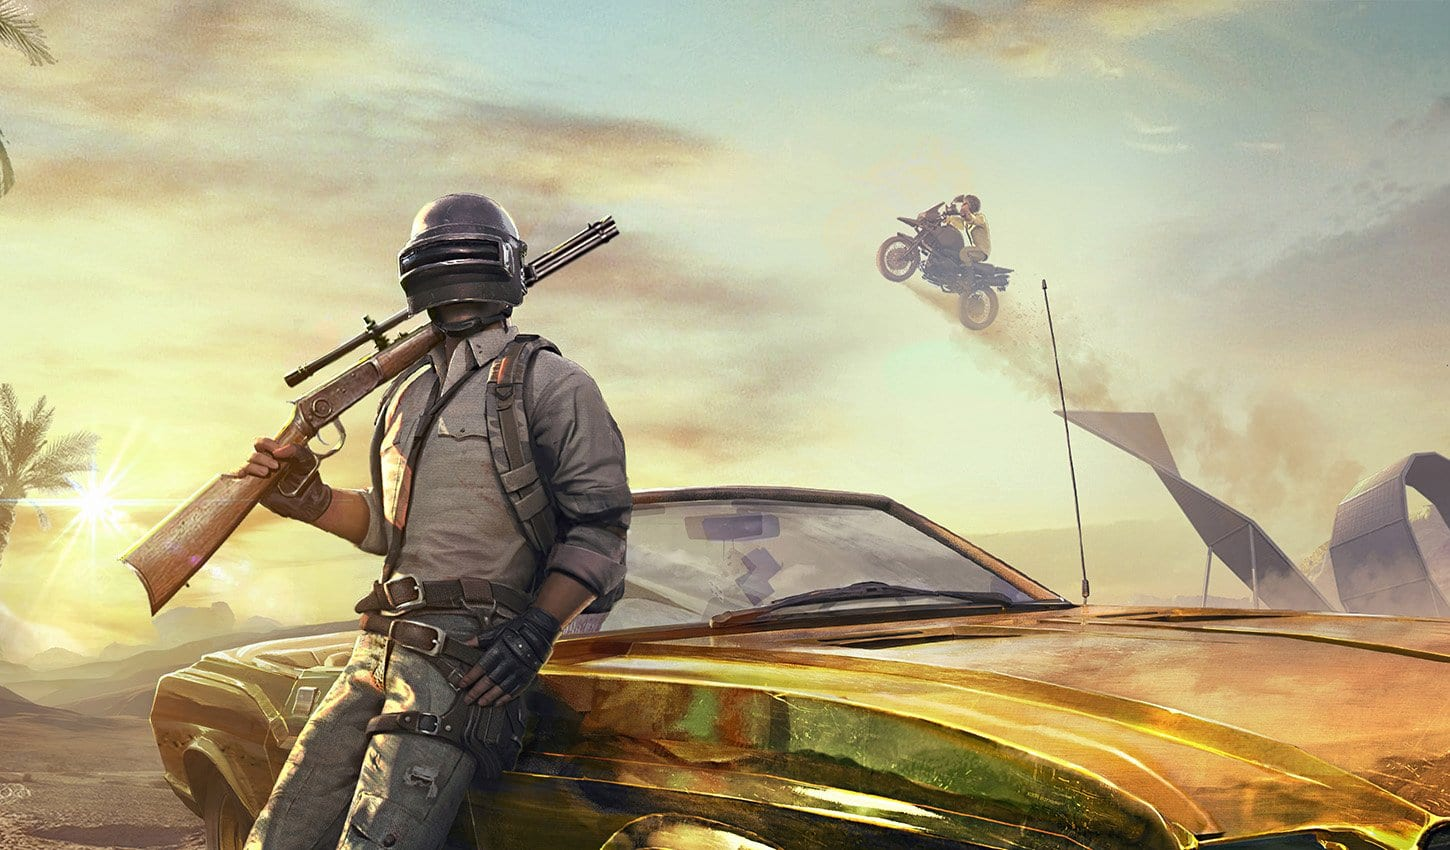 PUBG Mobile has made over $3 billion